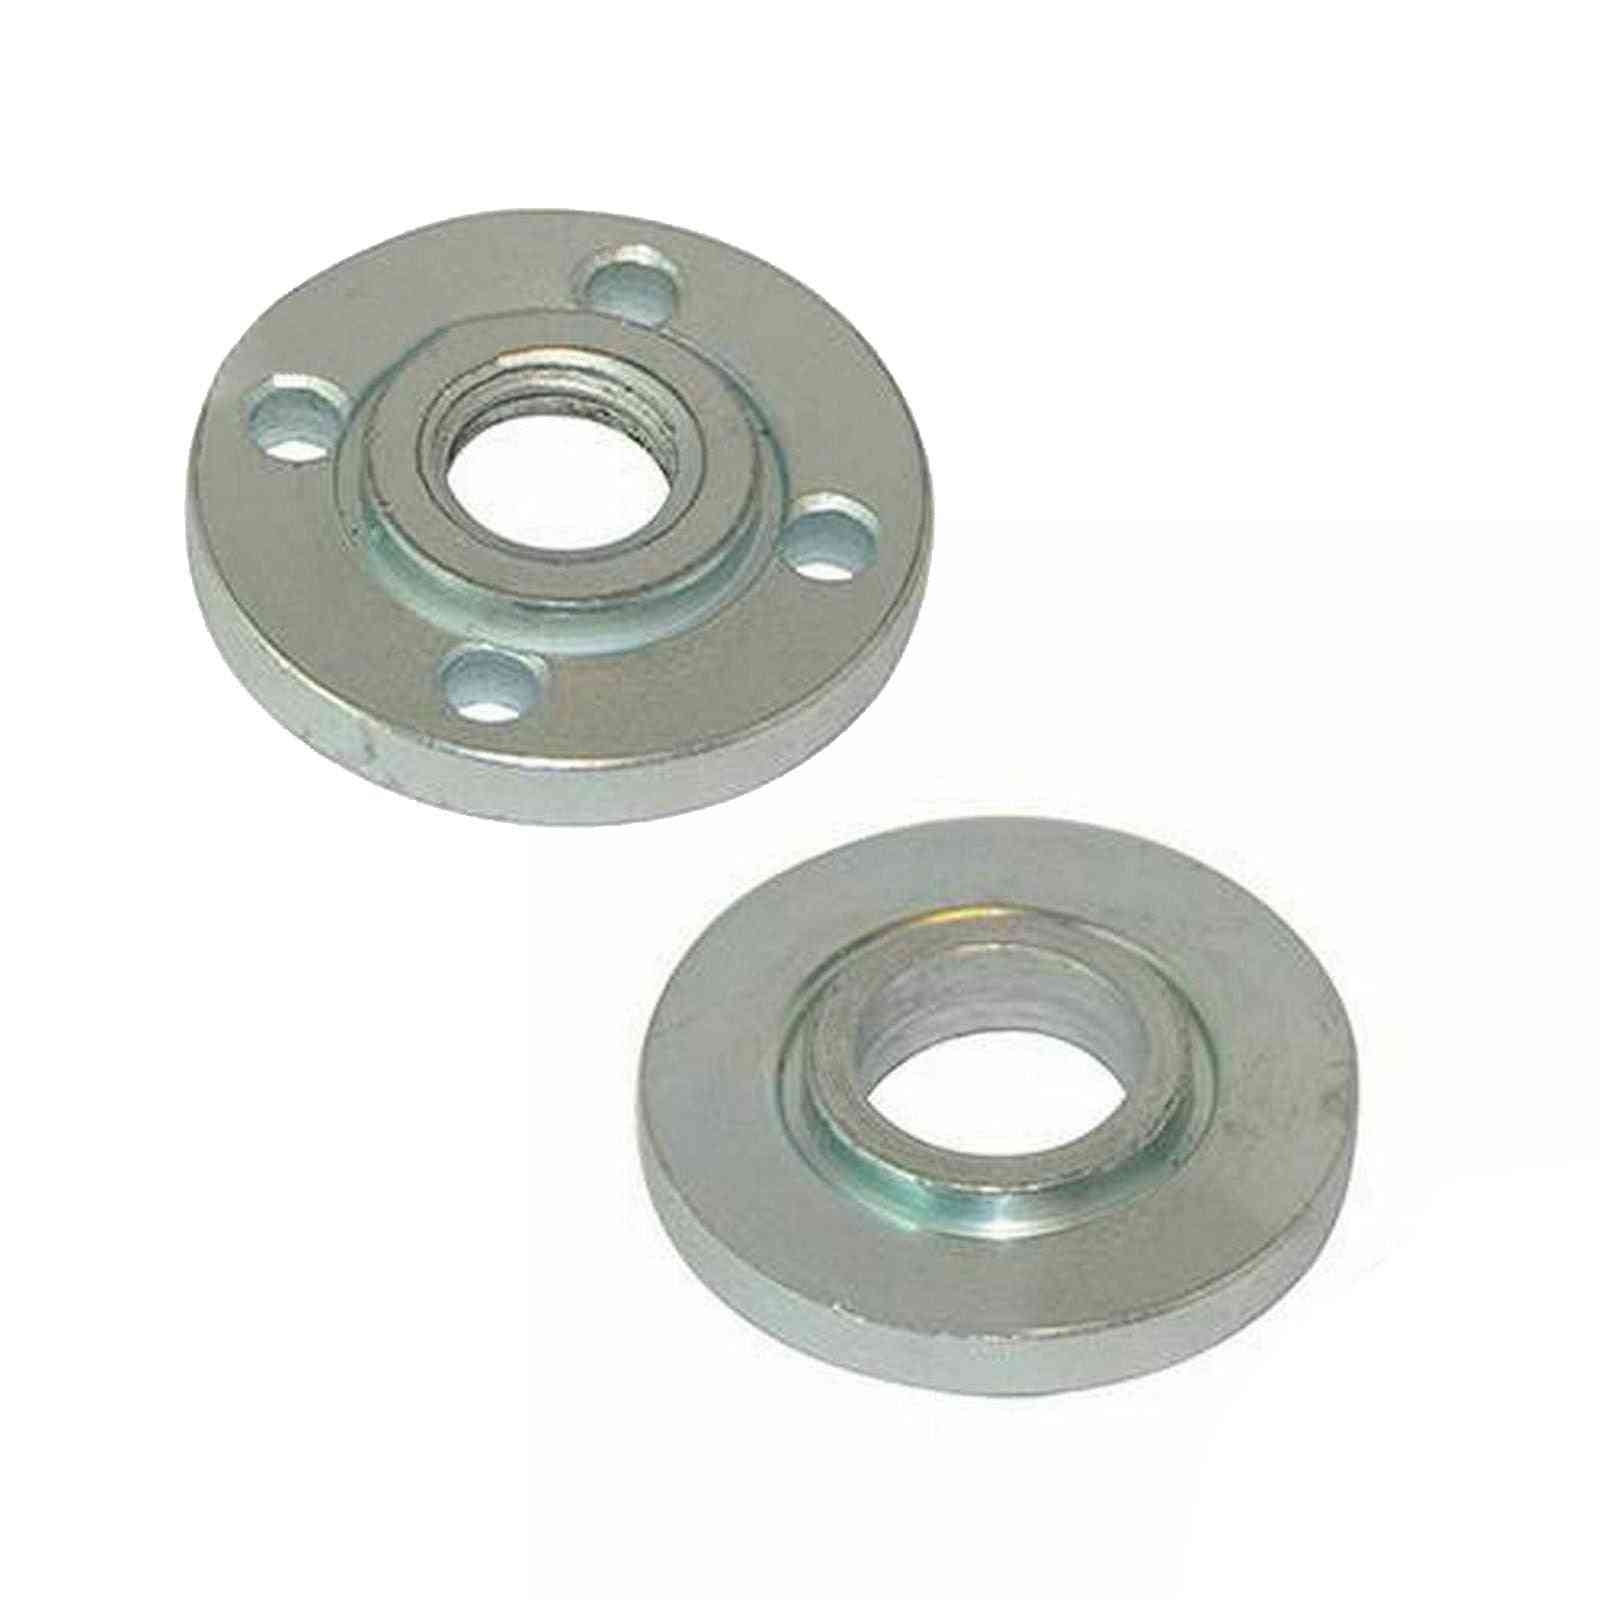 M14 Thread Replacement Angle Grinder Inner Outer Flange Nut Set